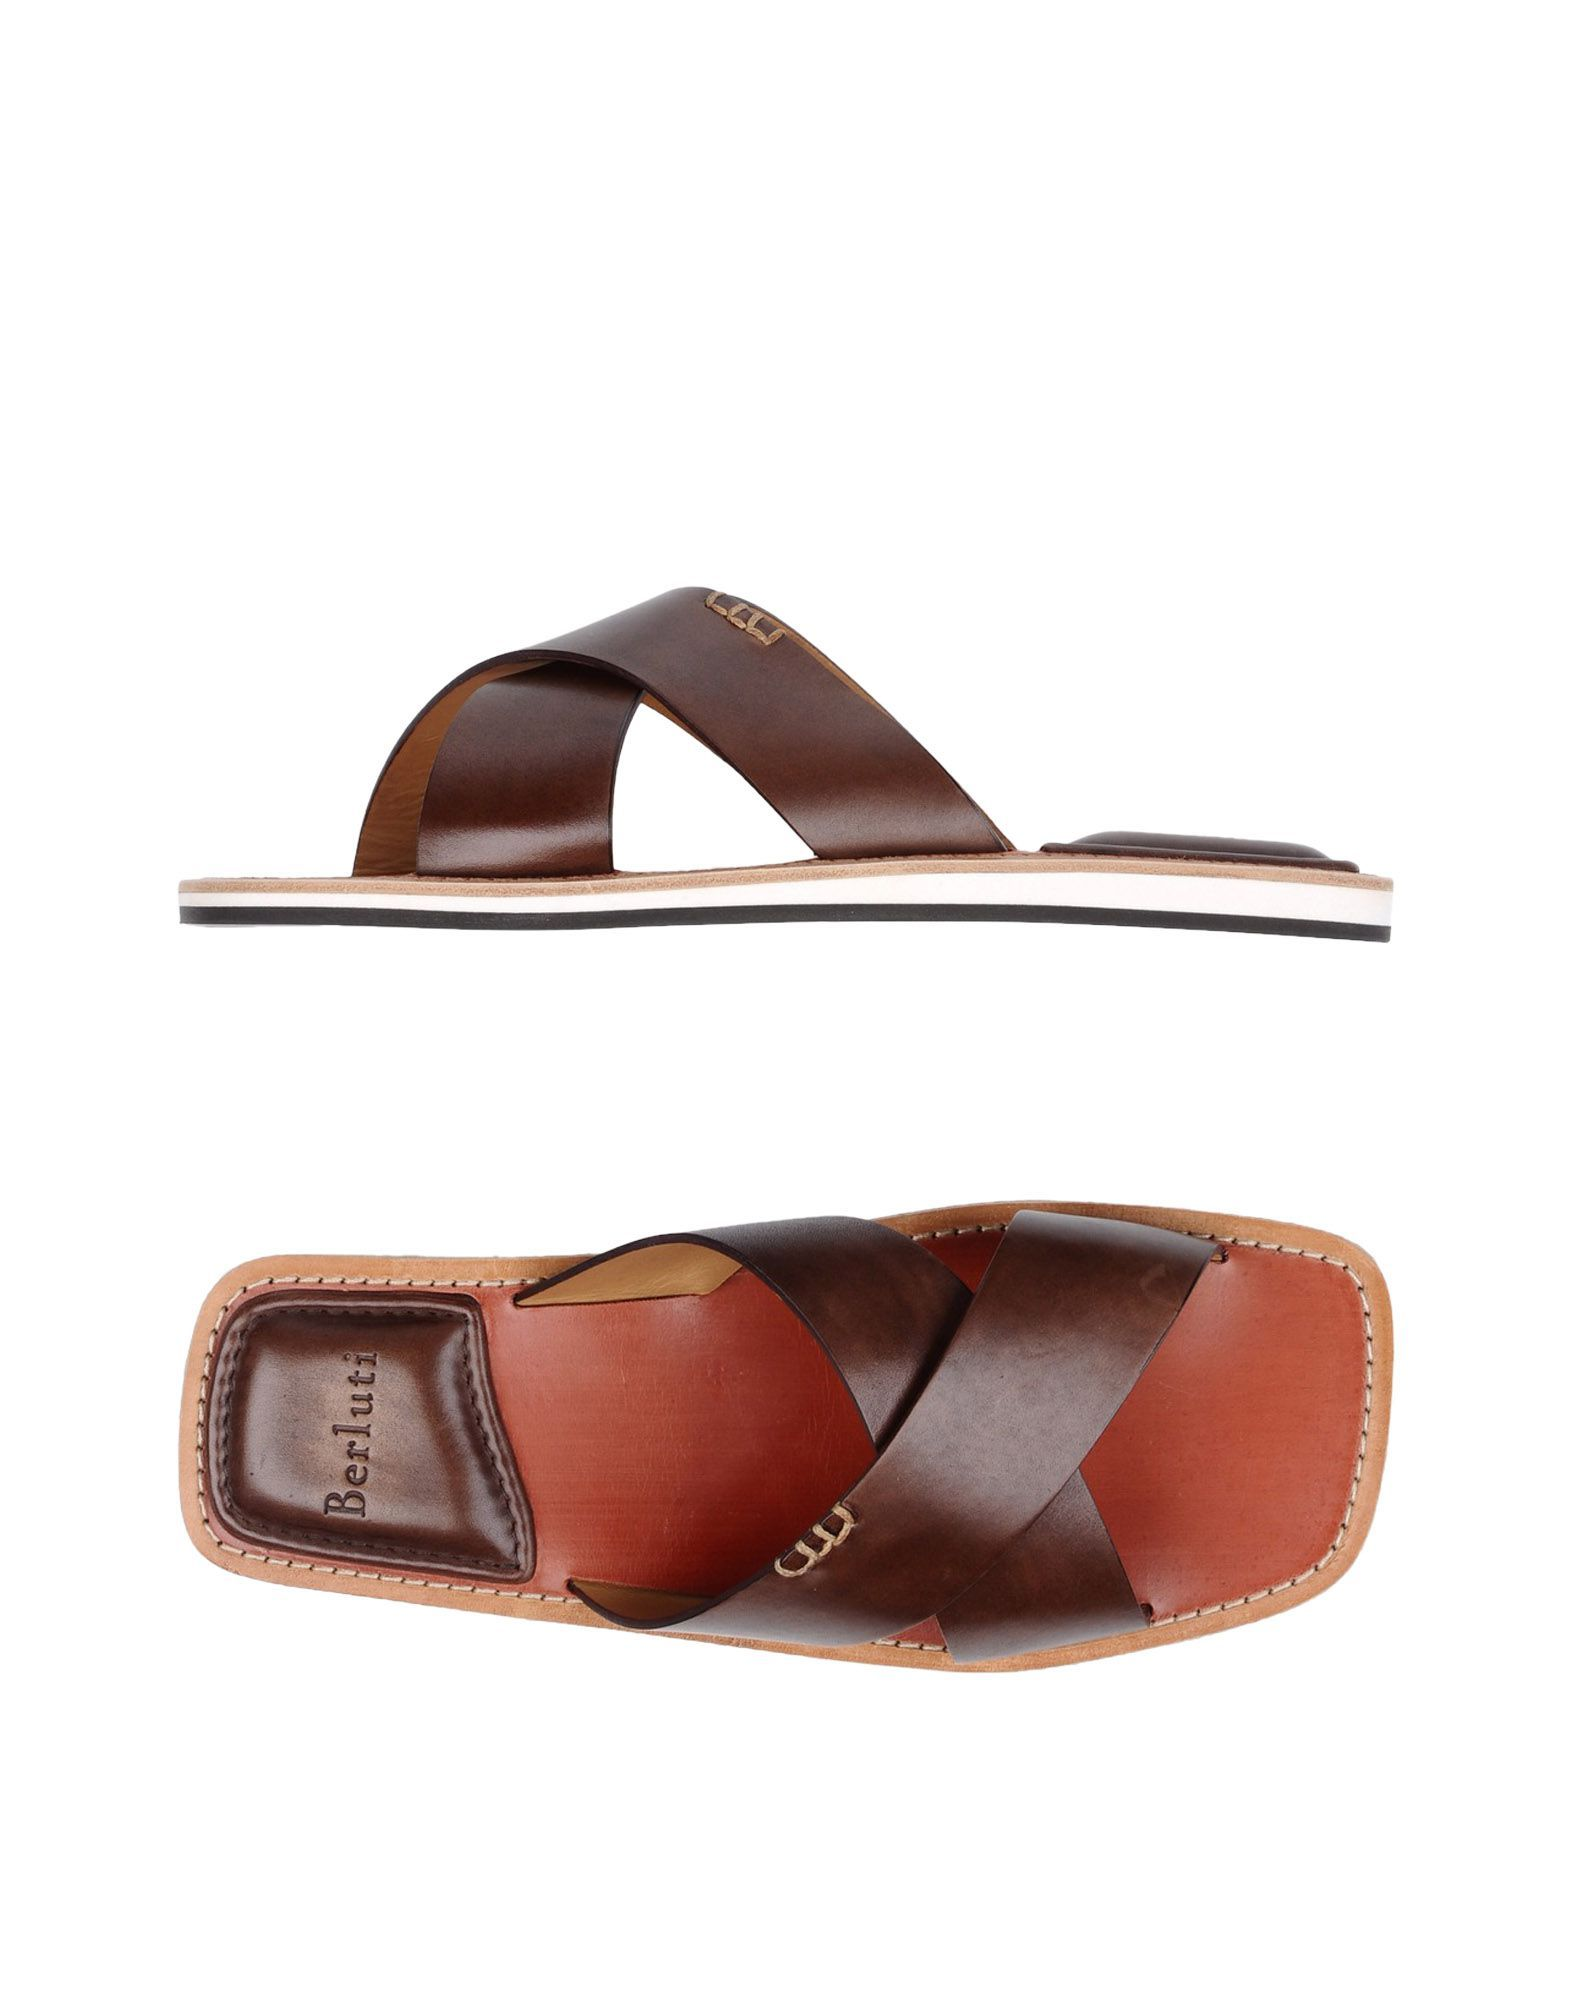 b33269eed Berluti Paris Men Sandals on YOOX. The best online selection of Sandals  Berluti Paris. YOOX exclusive items of Italian and international designers  - Secure ...